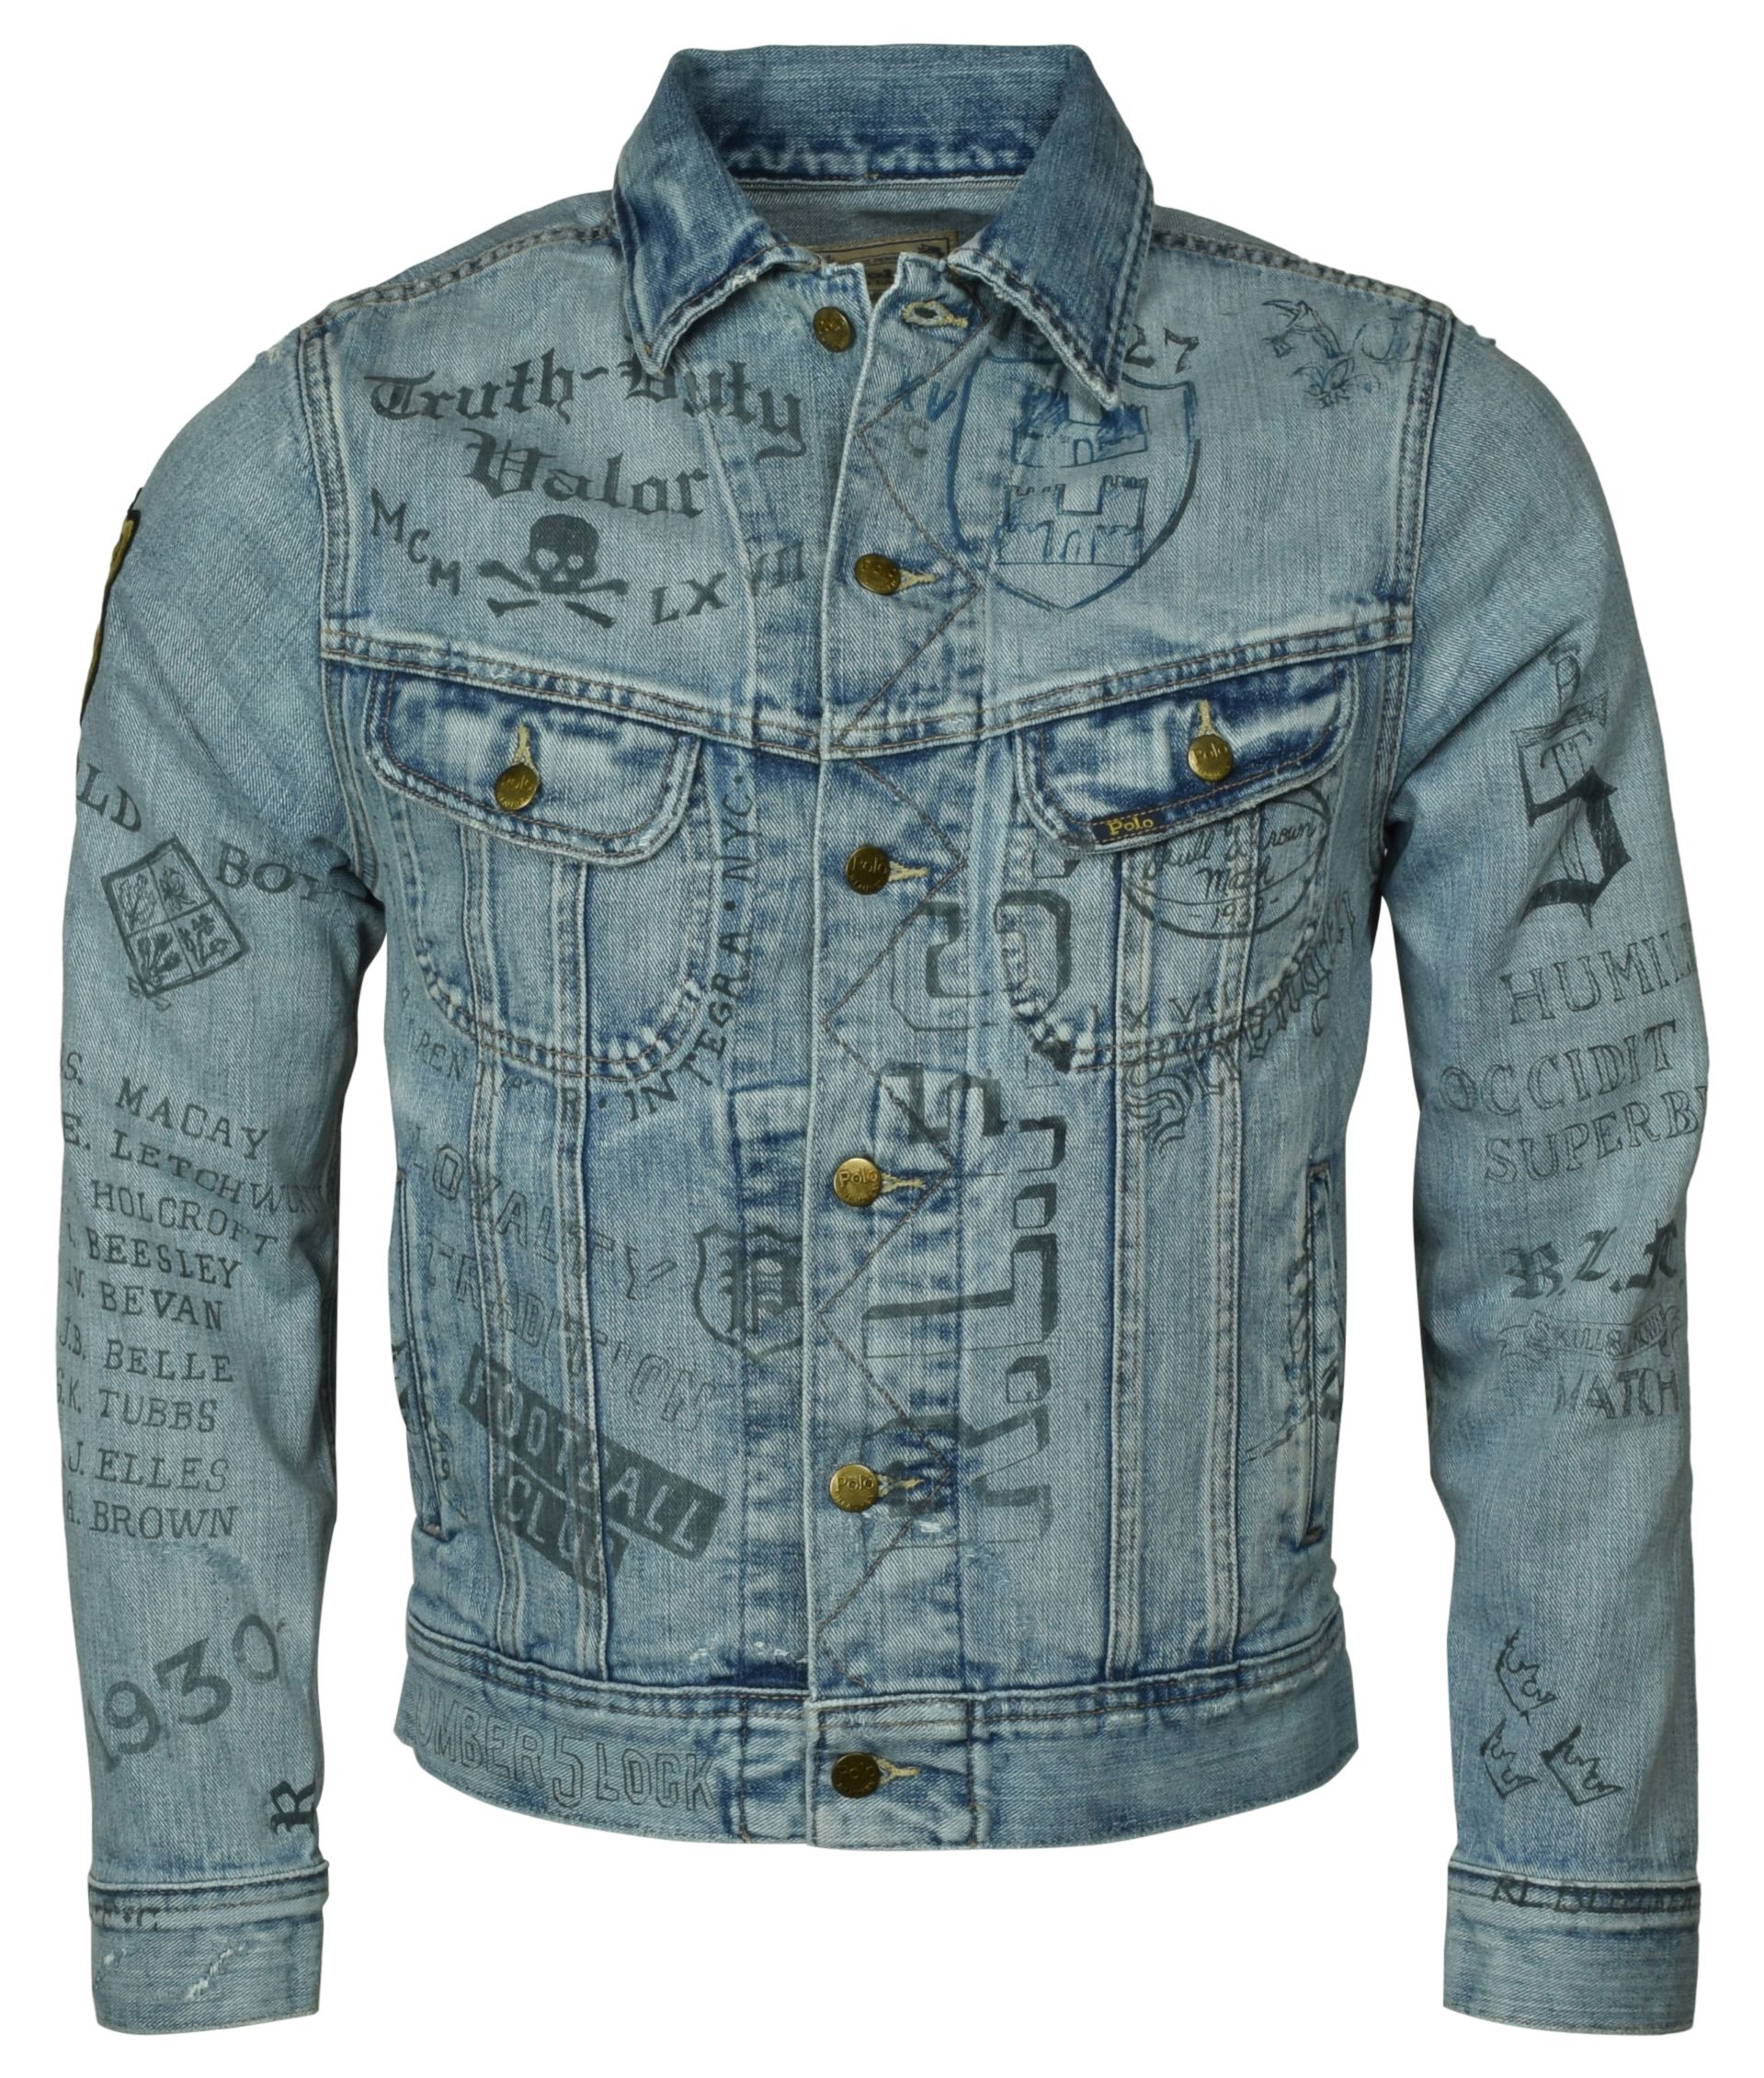 Jacket Inspired Polo Distressed Printed Details About Trucker Graphic Ralph Lauren College gb7Yf6yv